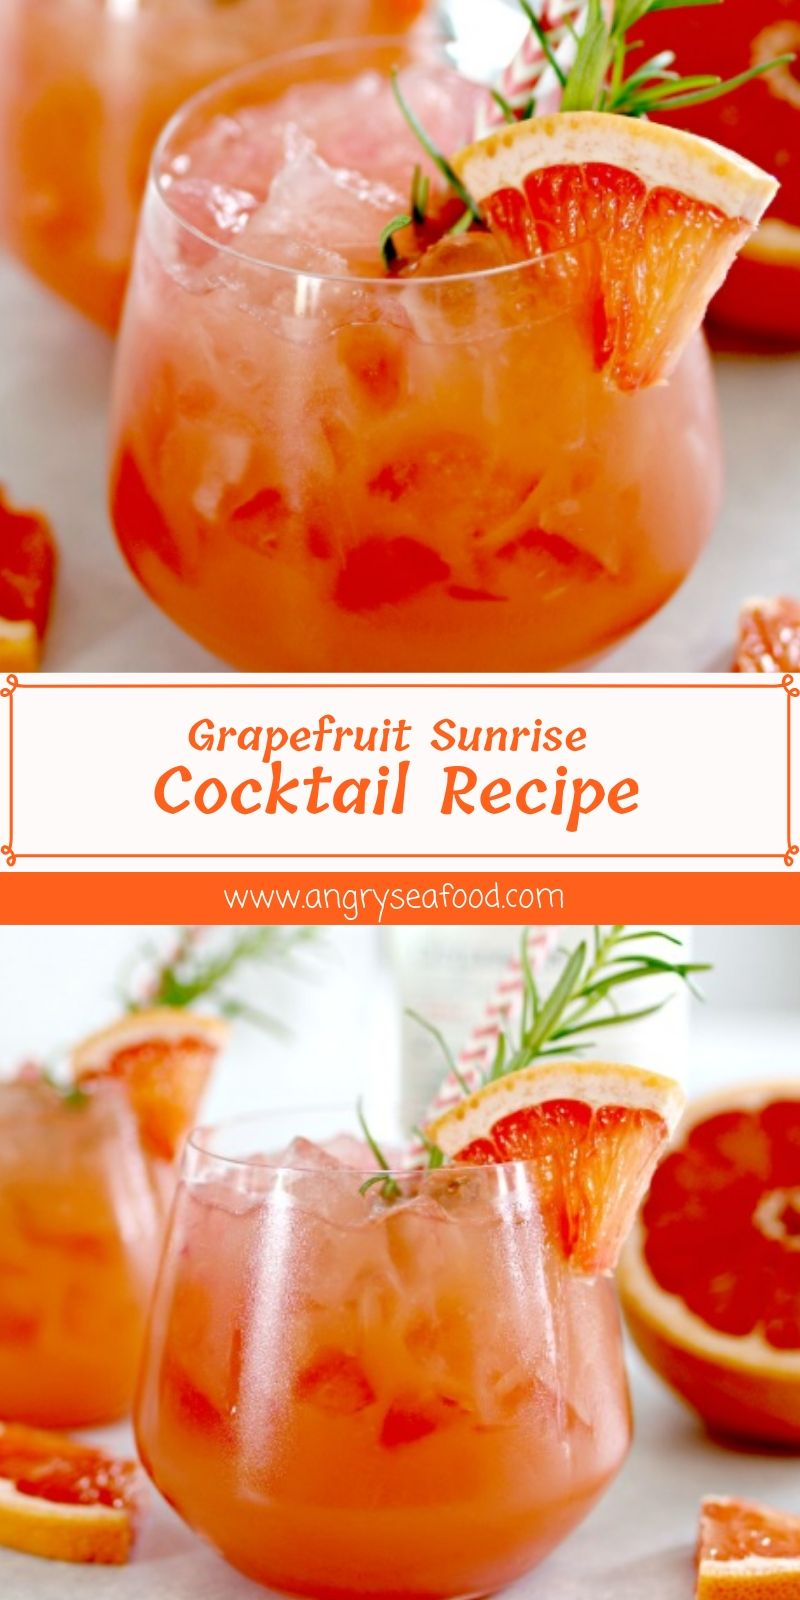 Grapefruit Sunrise Cocktail Recipe